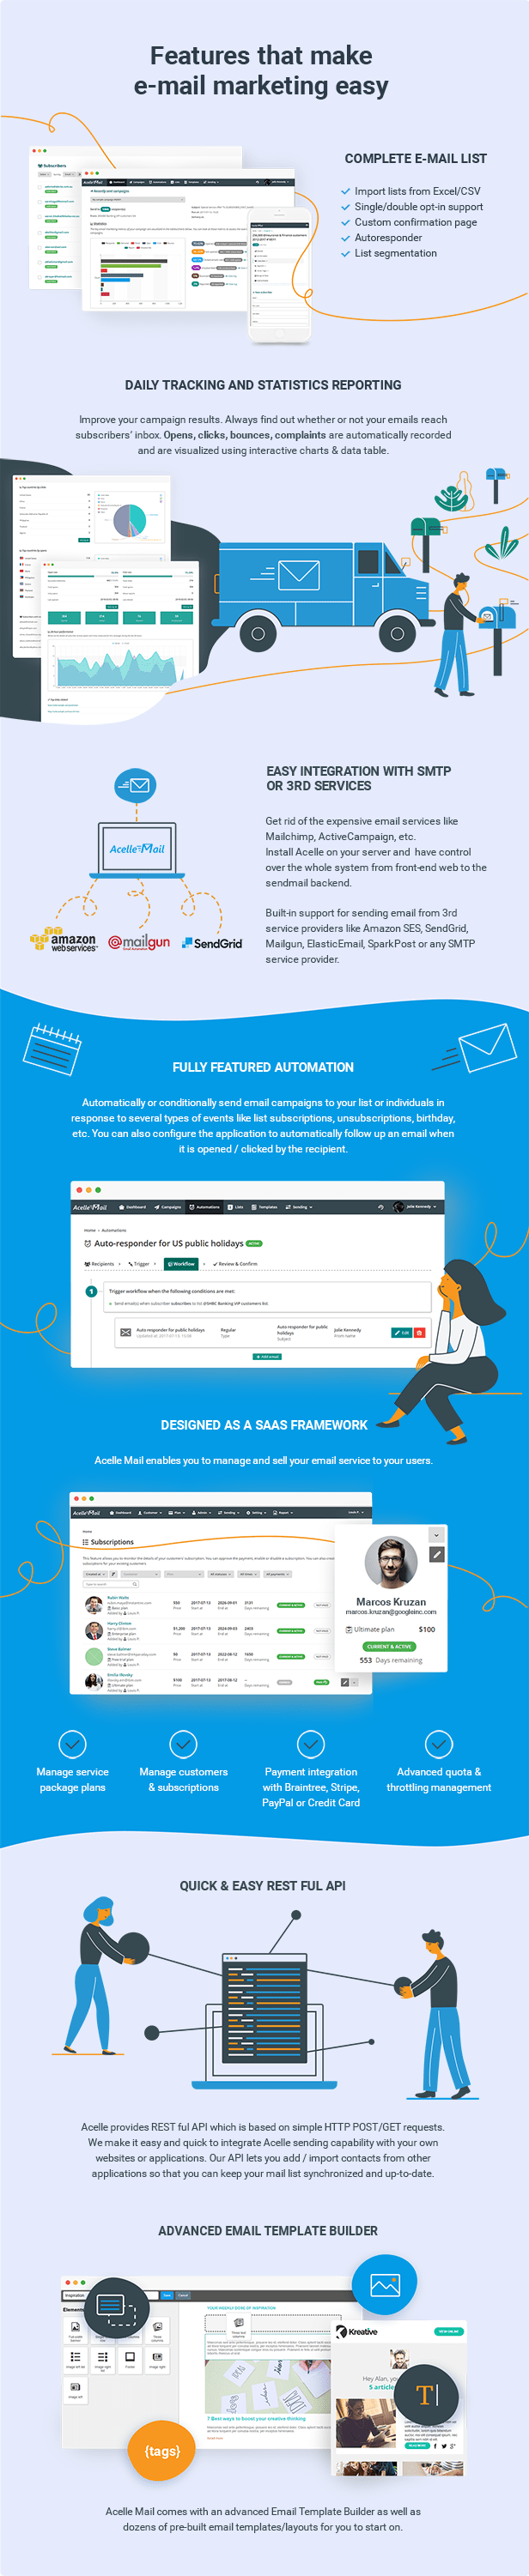 Acelle Email Marketing Web Application - 4